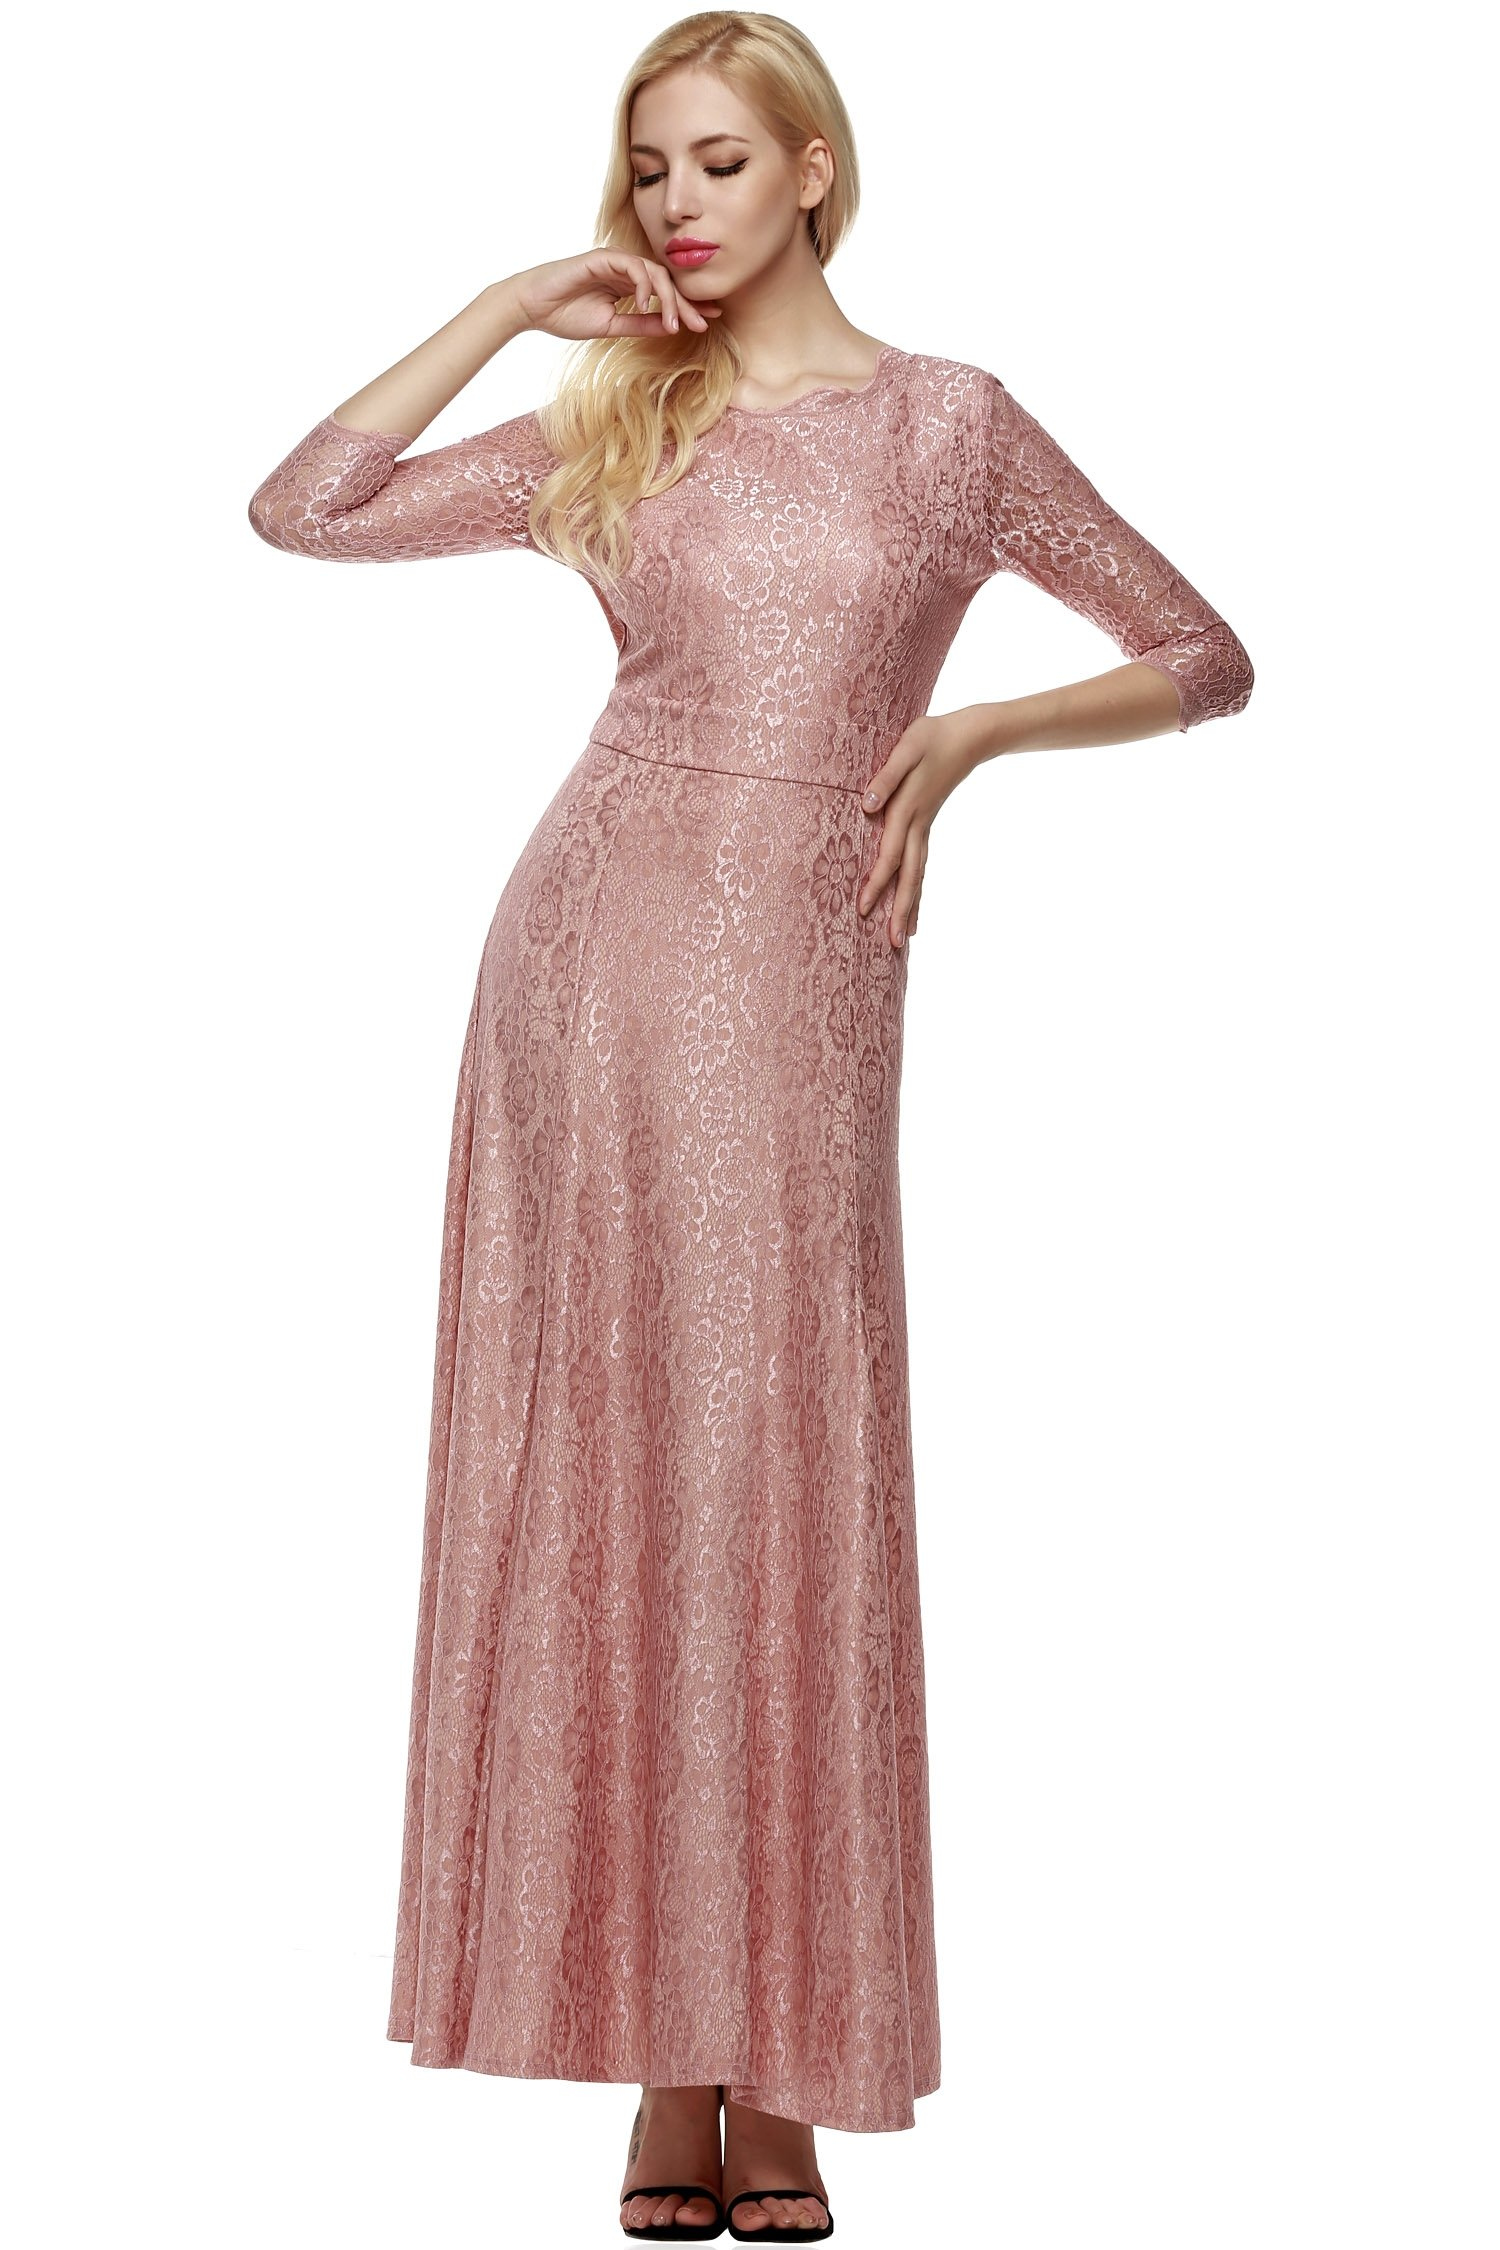 ANGVNS Women Lace 2/3 Sleeve Bridesmaid Homecoming Gown Dress, Size Large, Pink